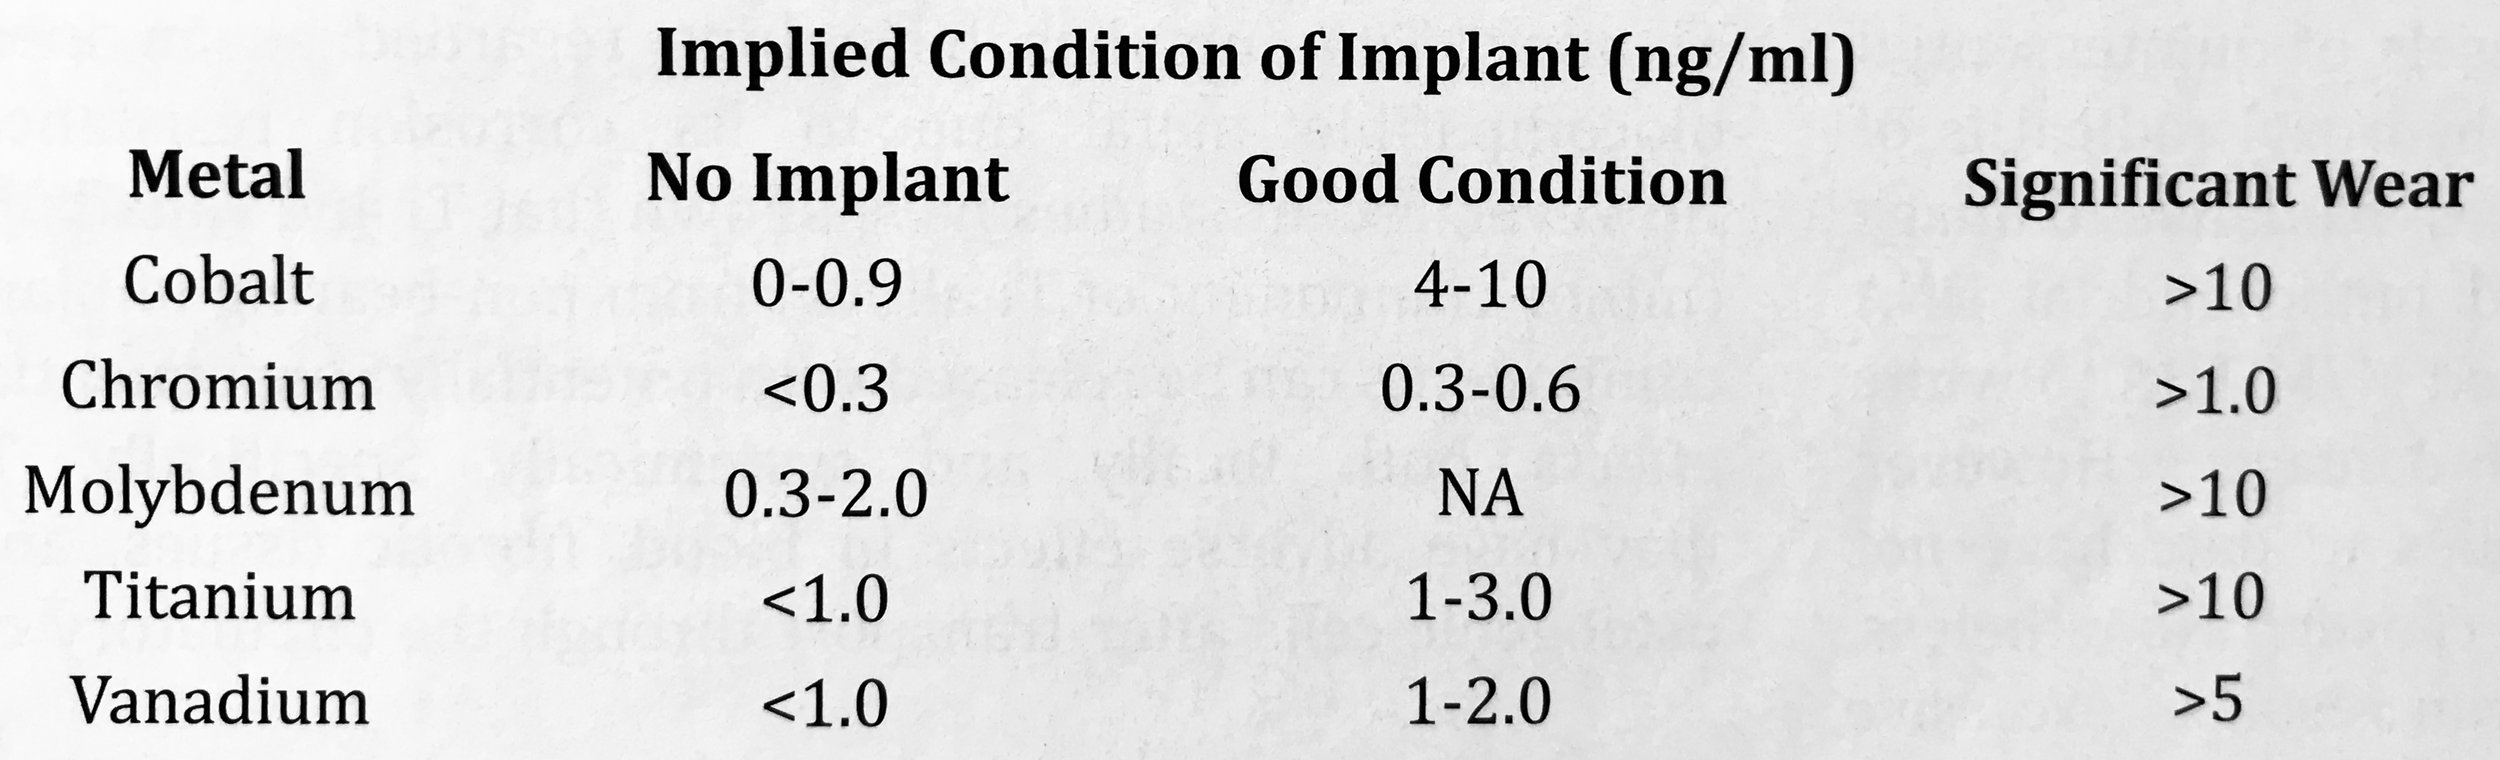 Table 1.  Serum Metal Concentrations (ng/ml) and Implied Condition of Prosthetic Implants. Data Compiled from Mayo Medical Laboratories.